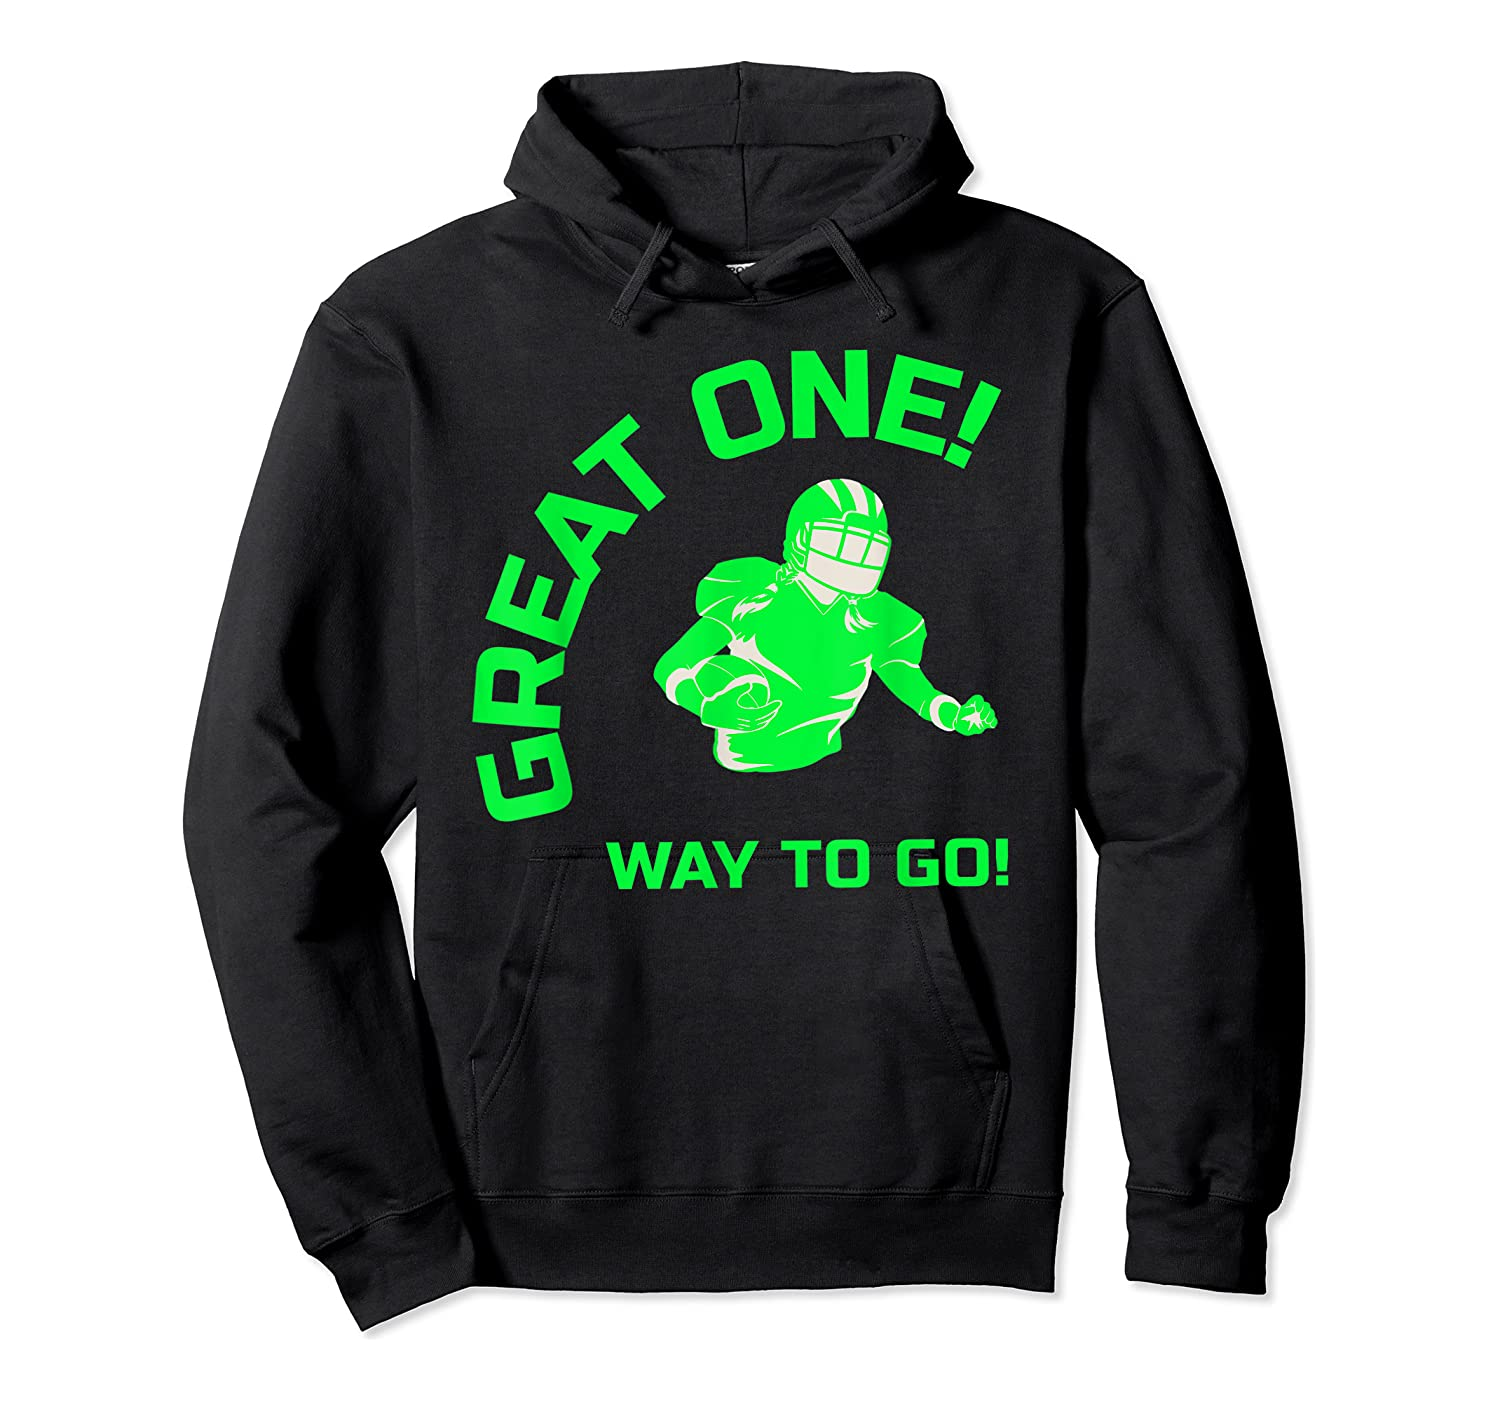 Great One! Way To Go! Football Tees T-shirt Unisex Pullover Hoodie